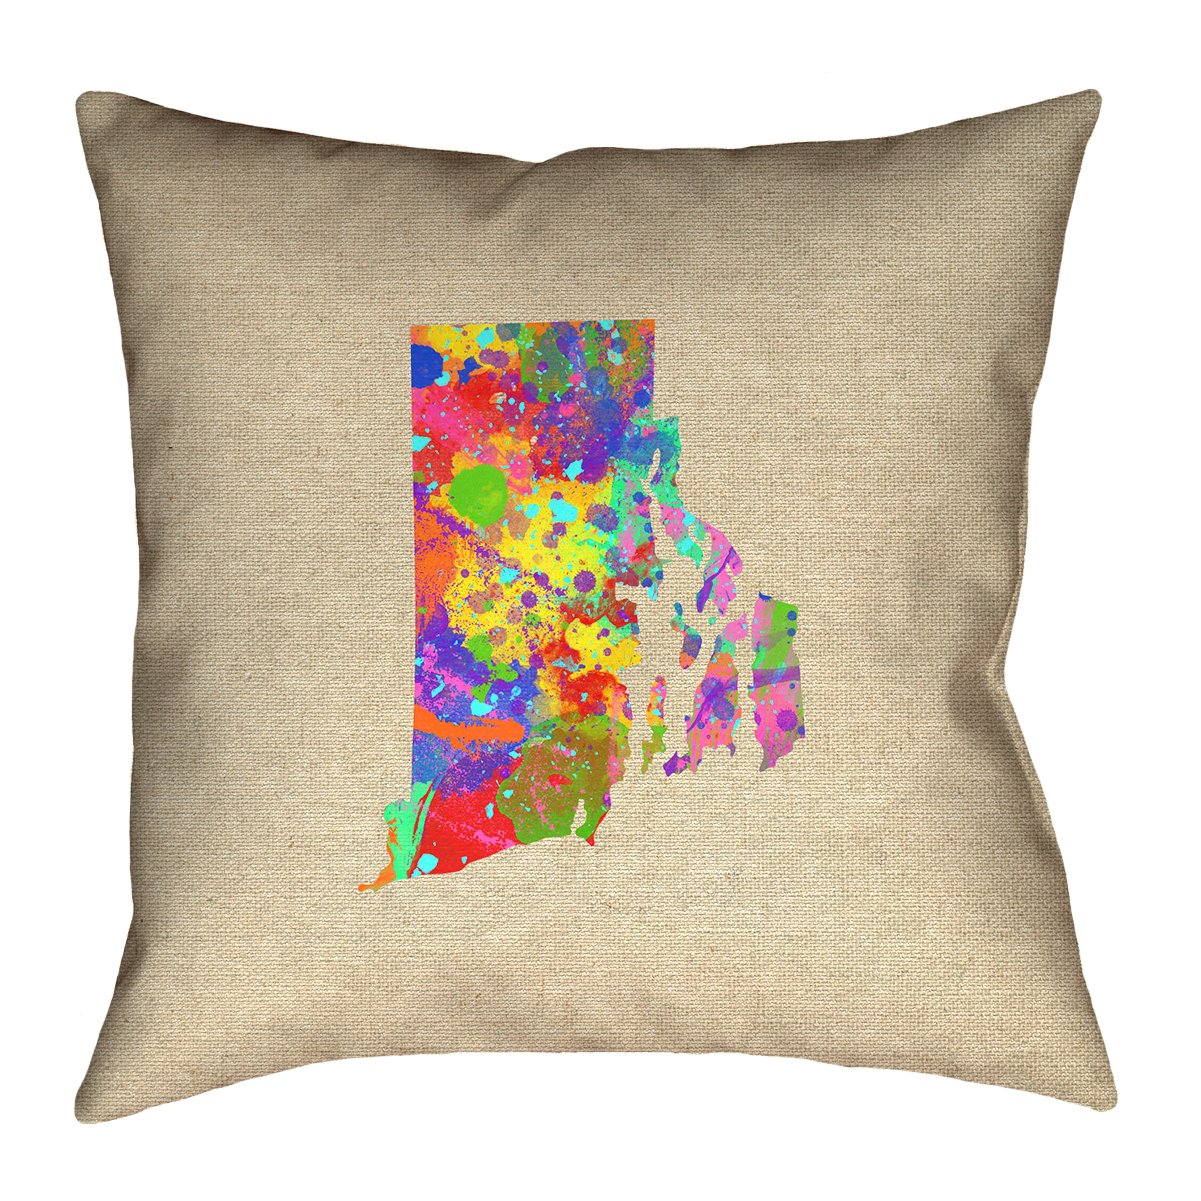 ArtVerse Katelyn Smith 16 x 16 Spun Polyester Double Sided Print with Concealed Zipper /& Insert Rhode Island Watercolor Pillow